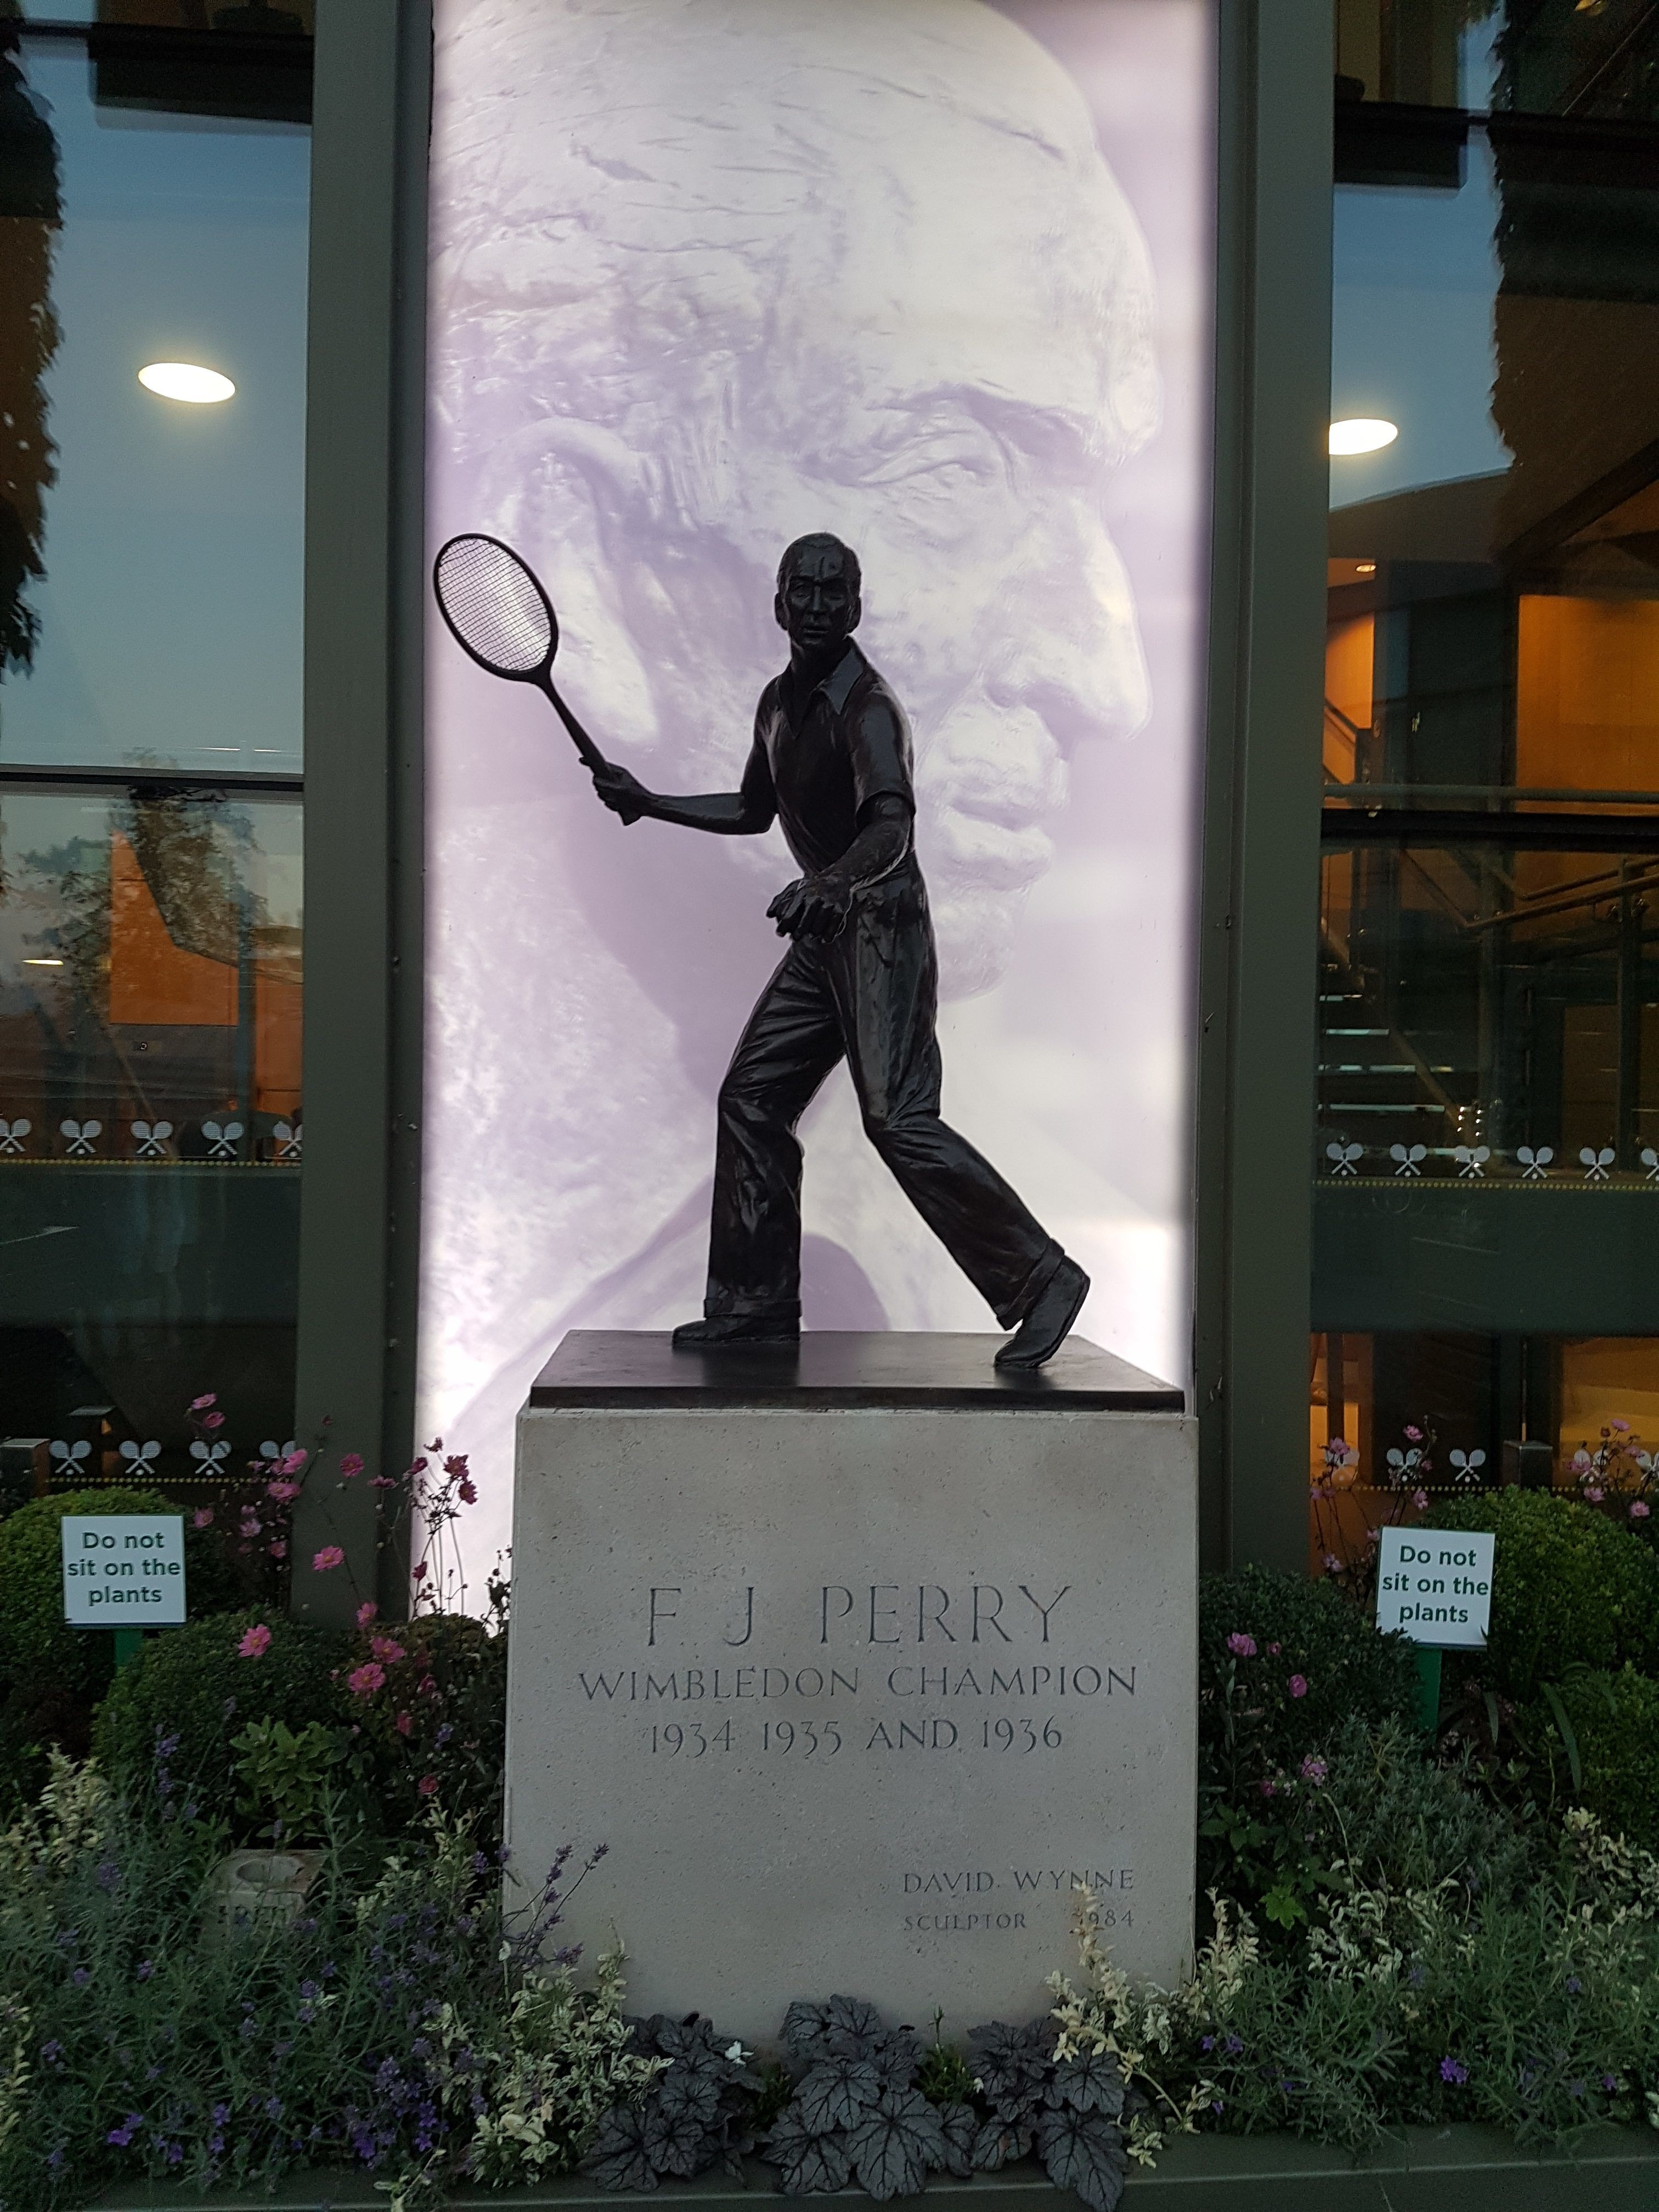 Merton Best Business Awards - Fred Perry Statue - All England Lawn Tennis Club - 001